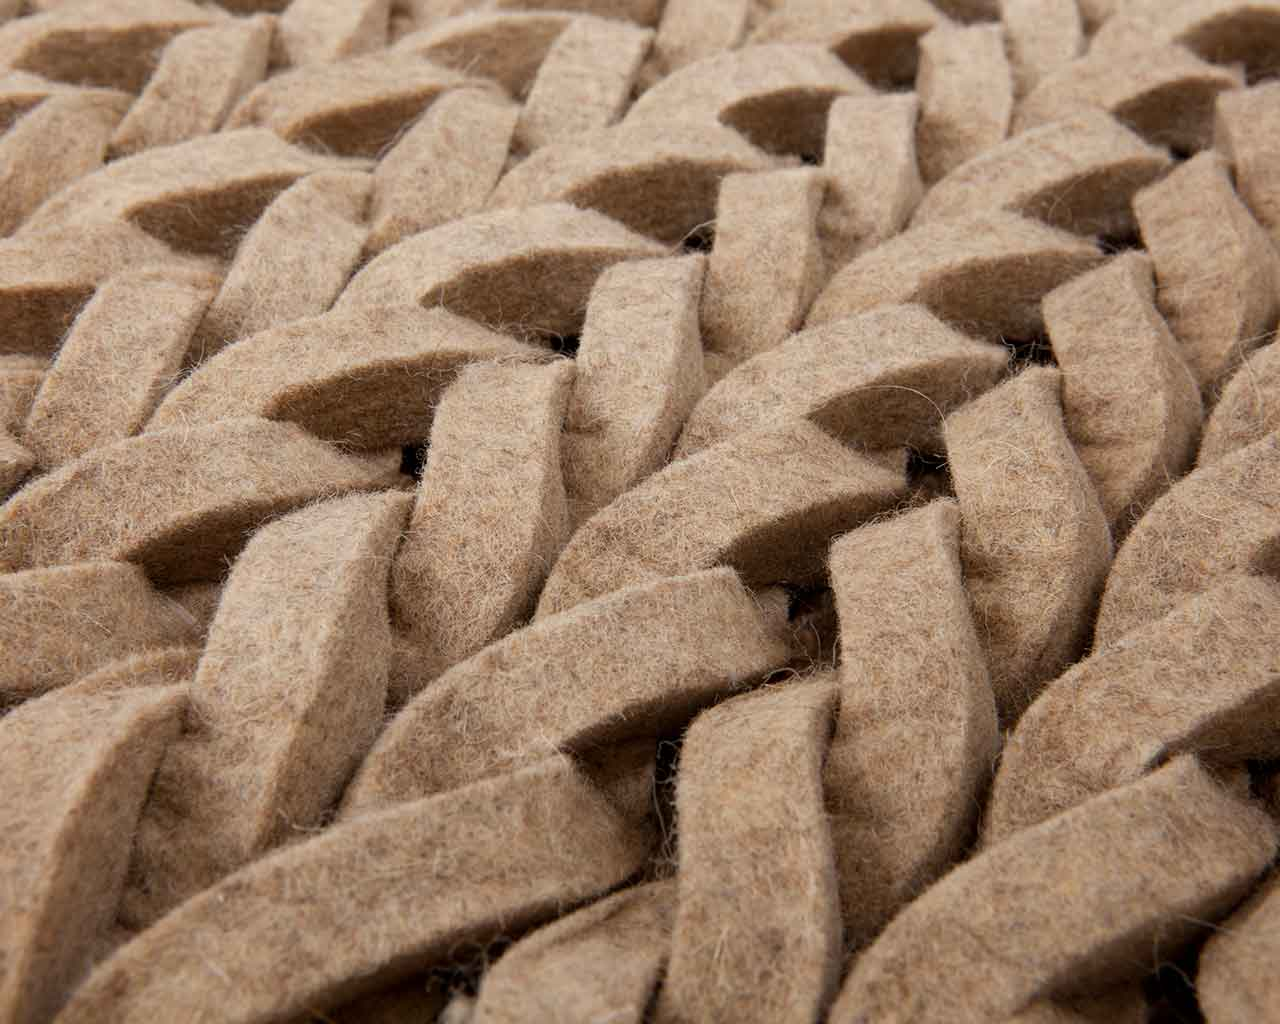 felted rugs from india beige brown natural handmade 1